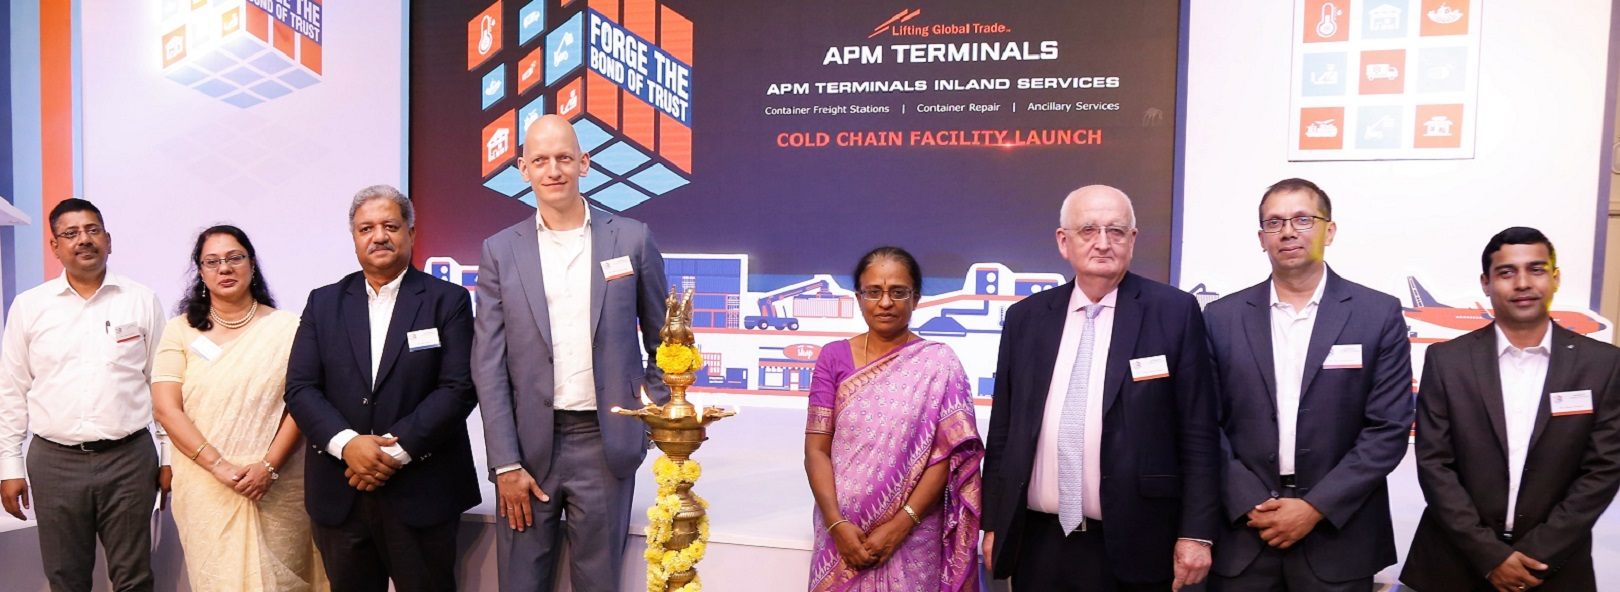 APM Terminals launches integrated cold chain facility in South India